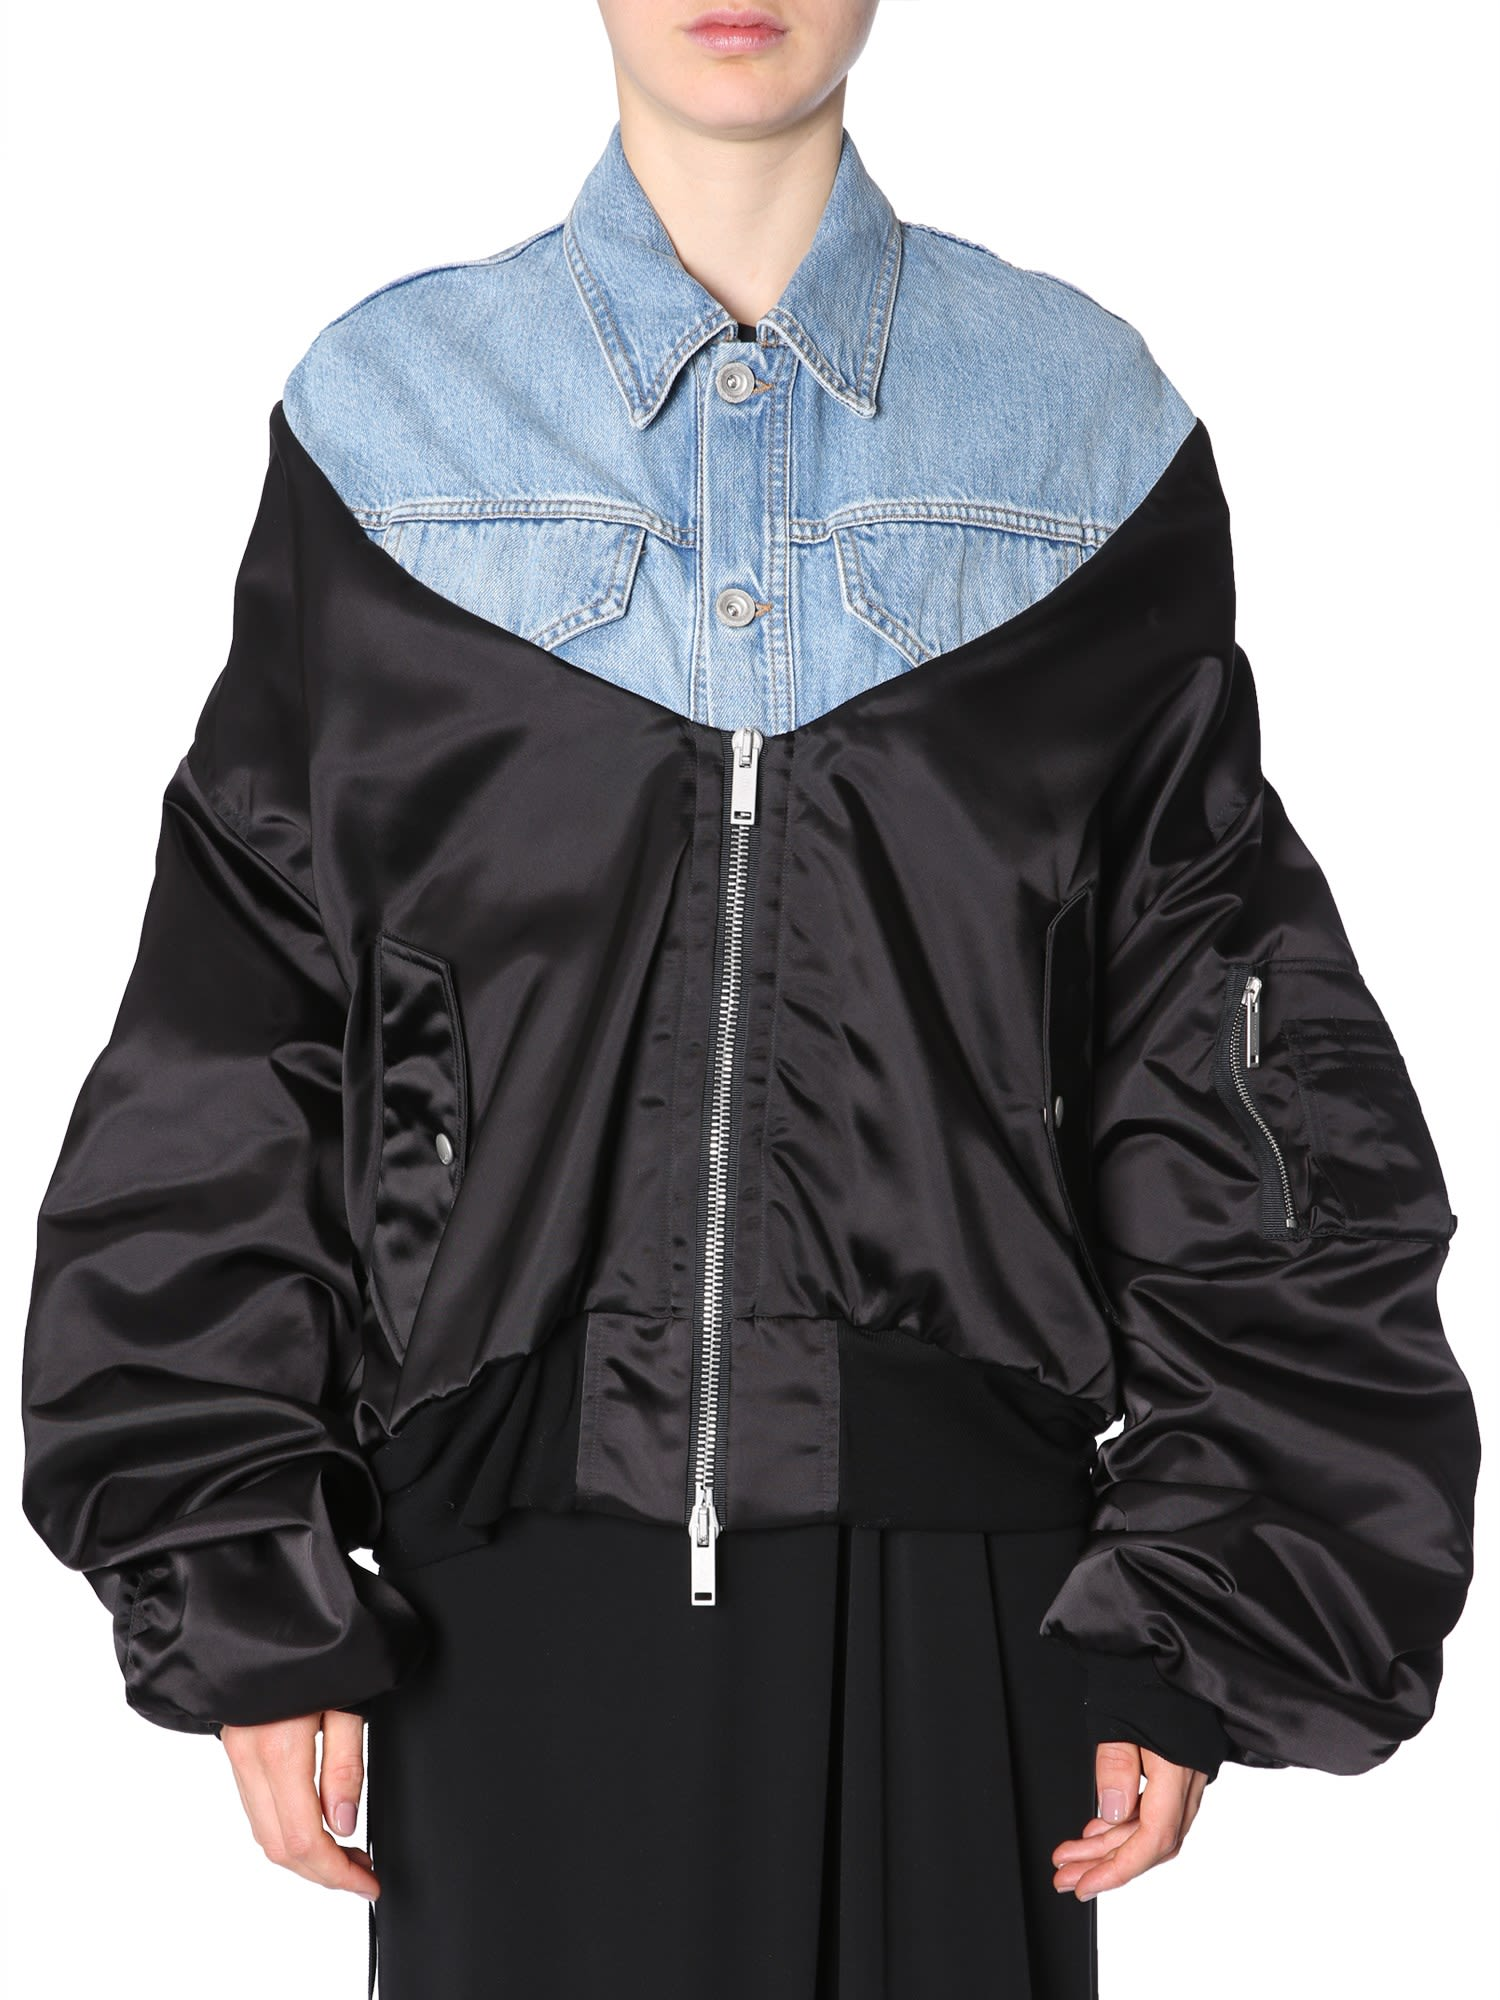 Ben Taverniti Unravel Project OVERSIZE FIT BOMBER